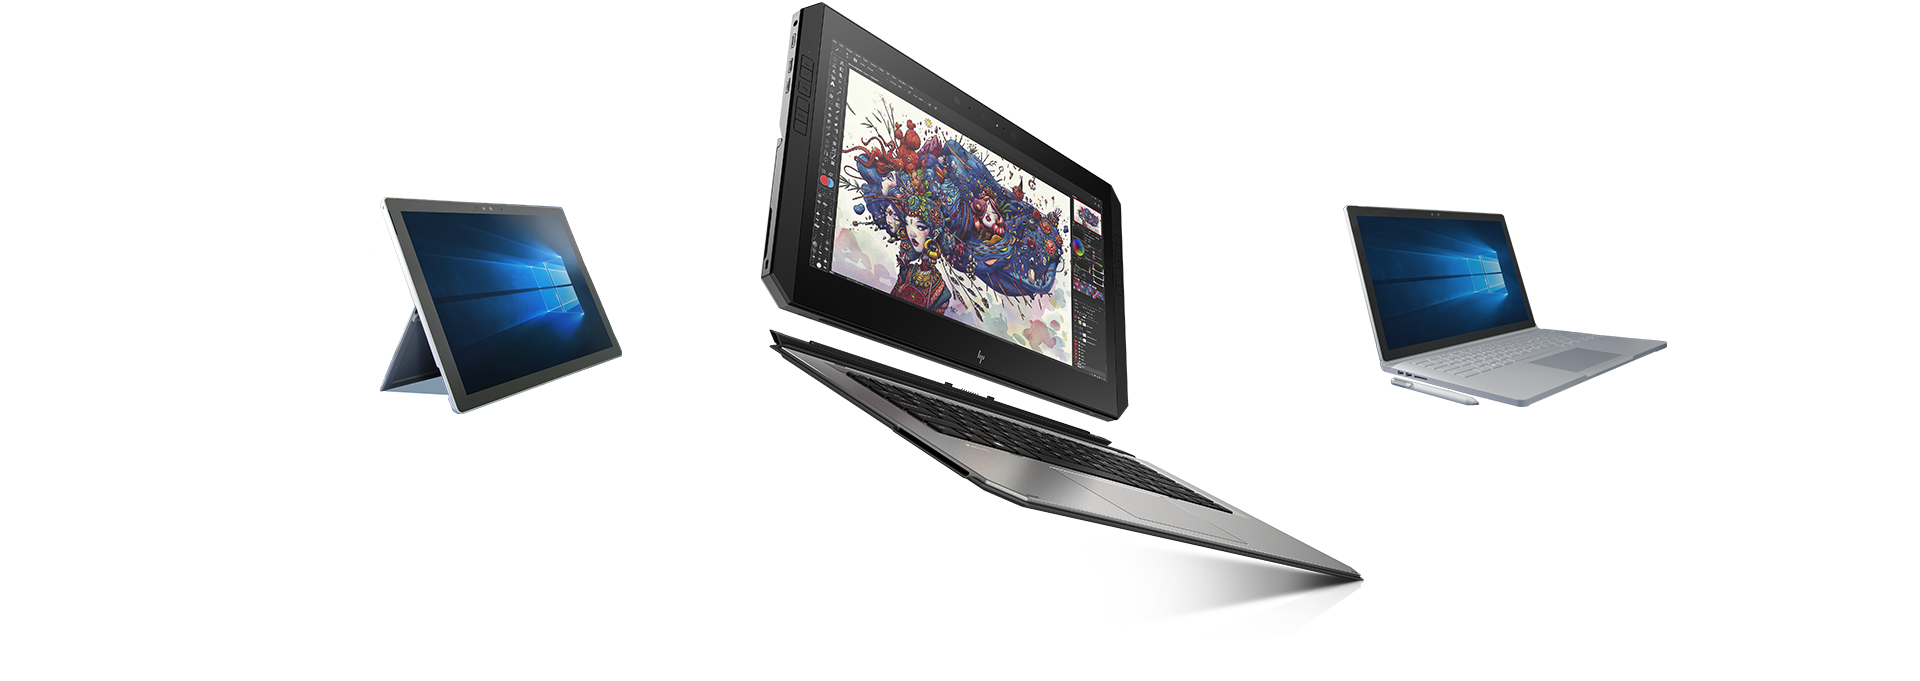 HP Zbook x2 vs. Microsoft® surface